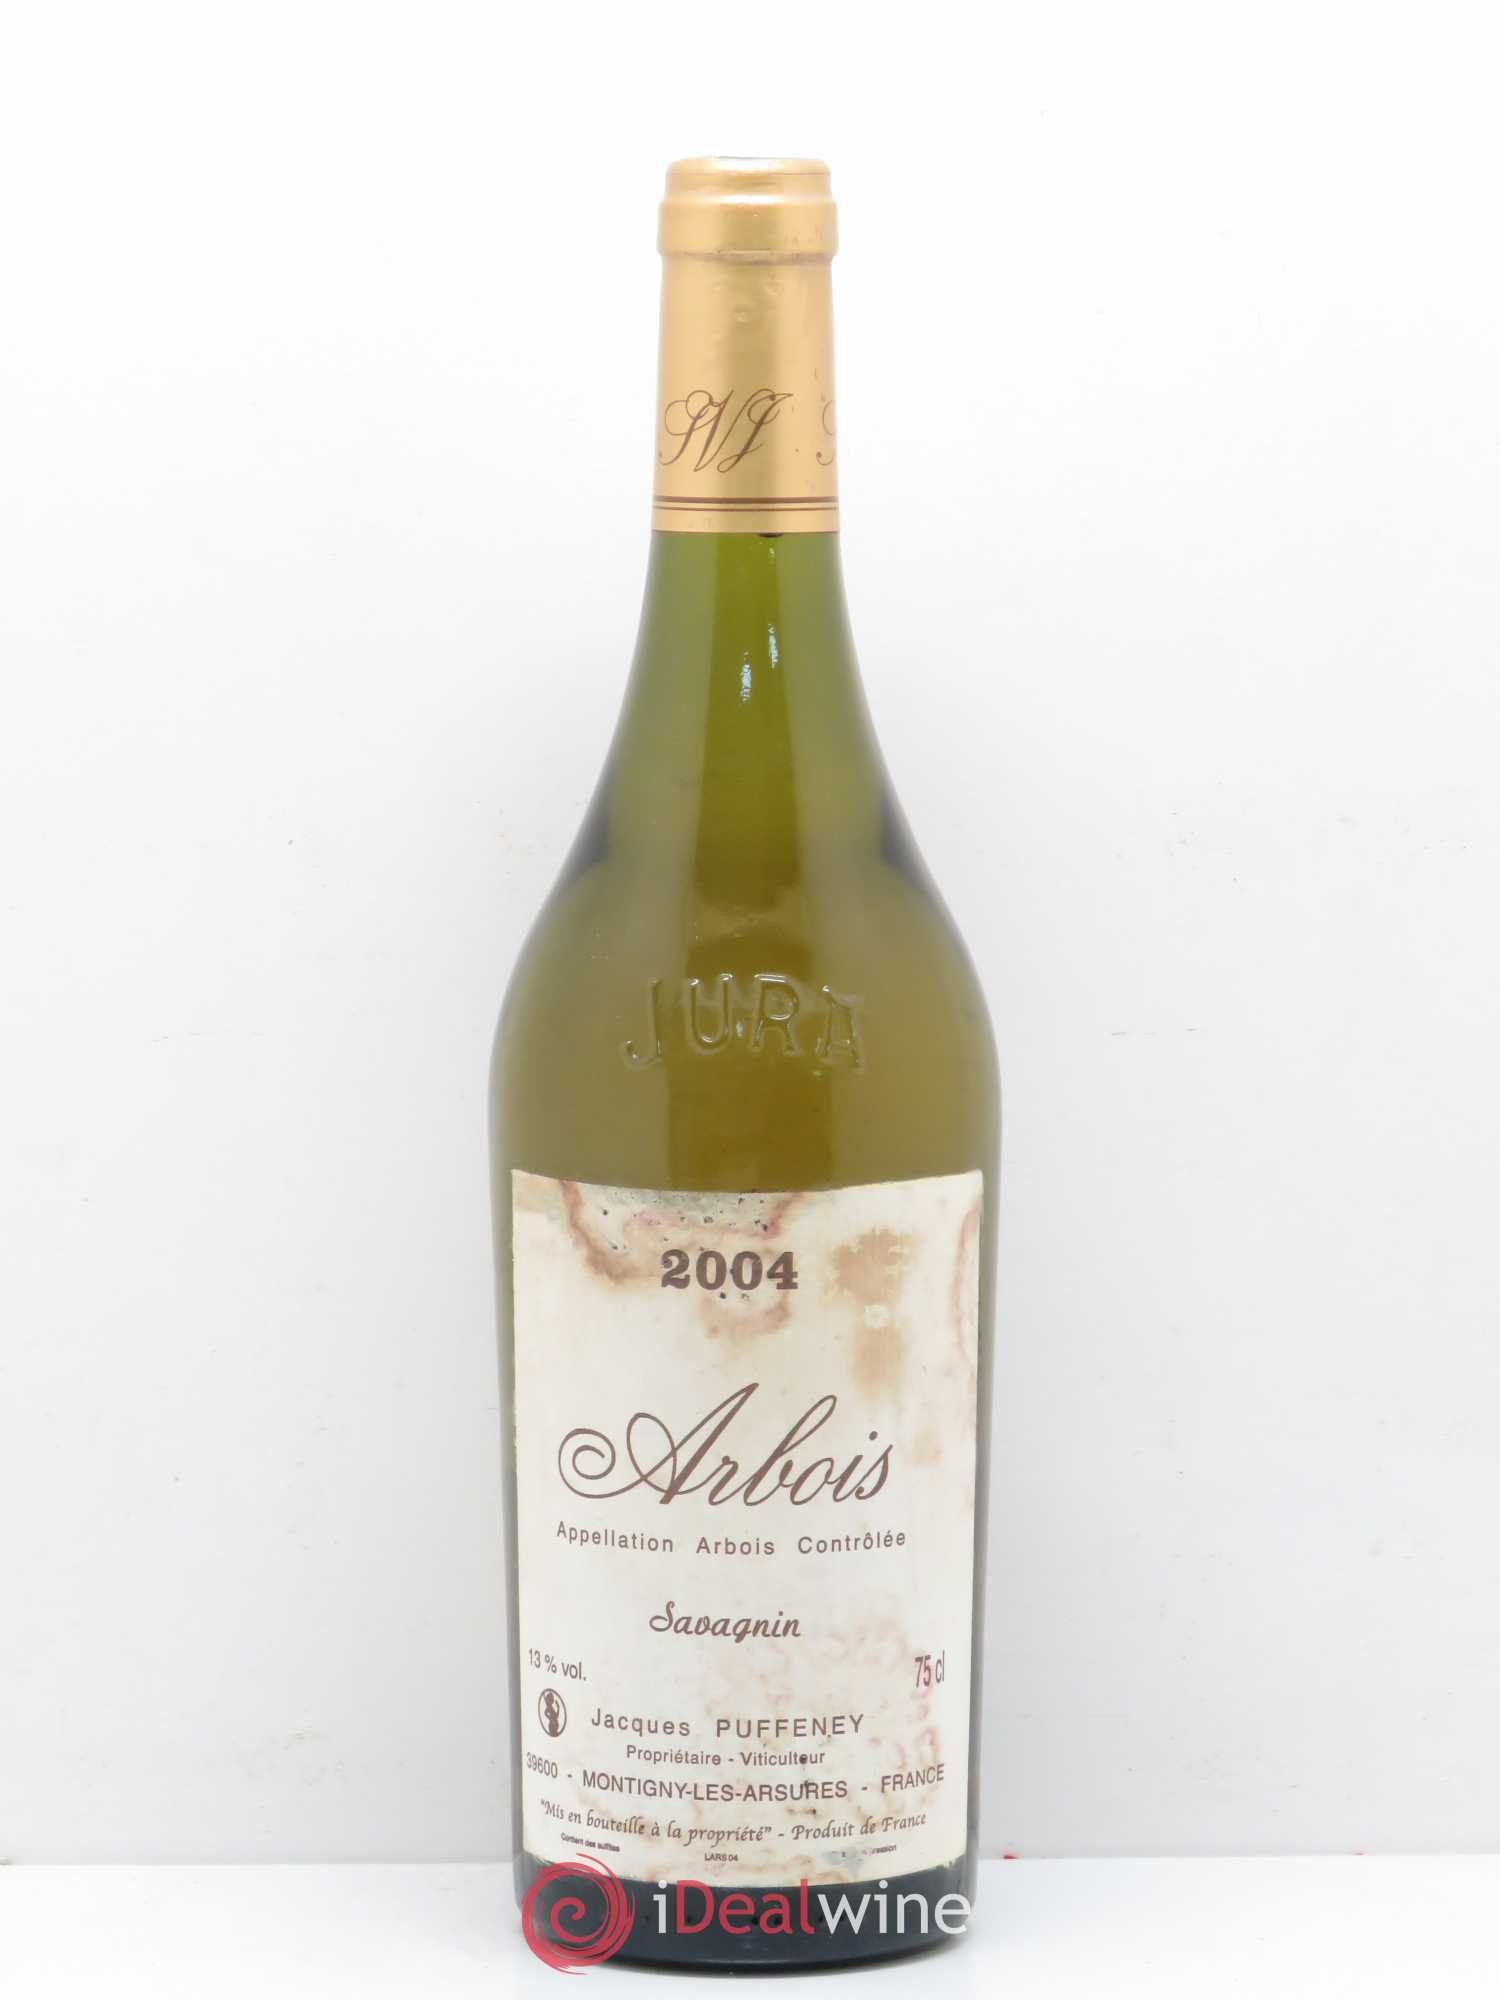 Arbois Savagnin Jacques Puffeney 2004 - Lot de 1 Bouteille